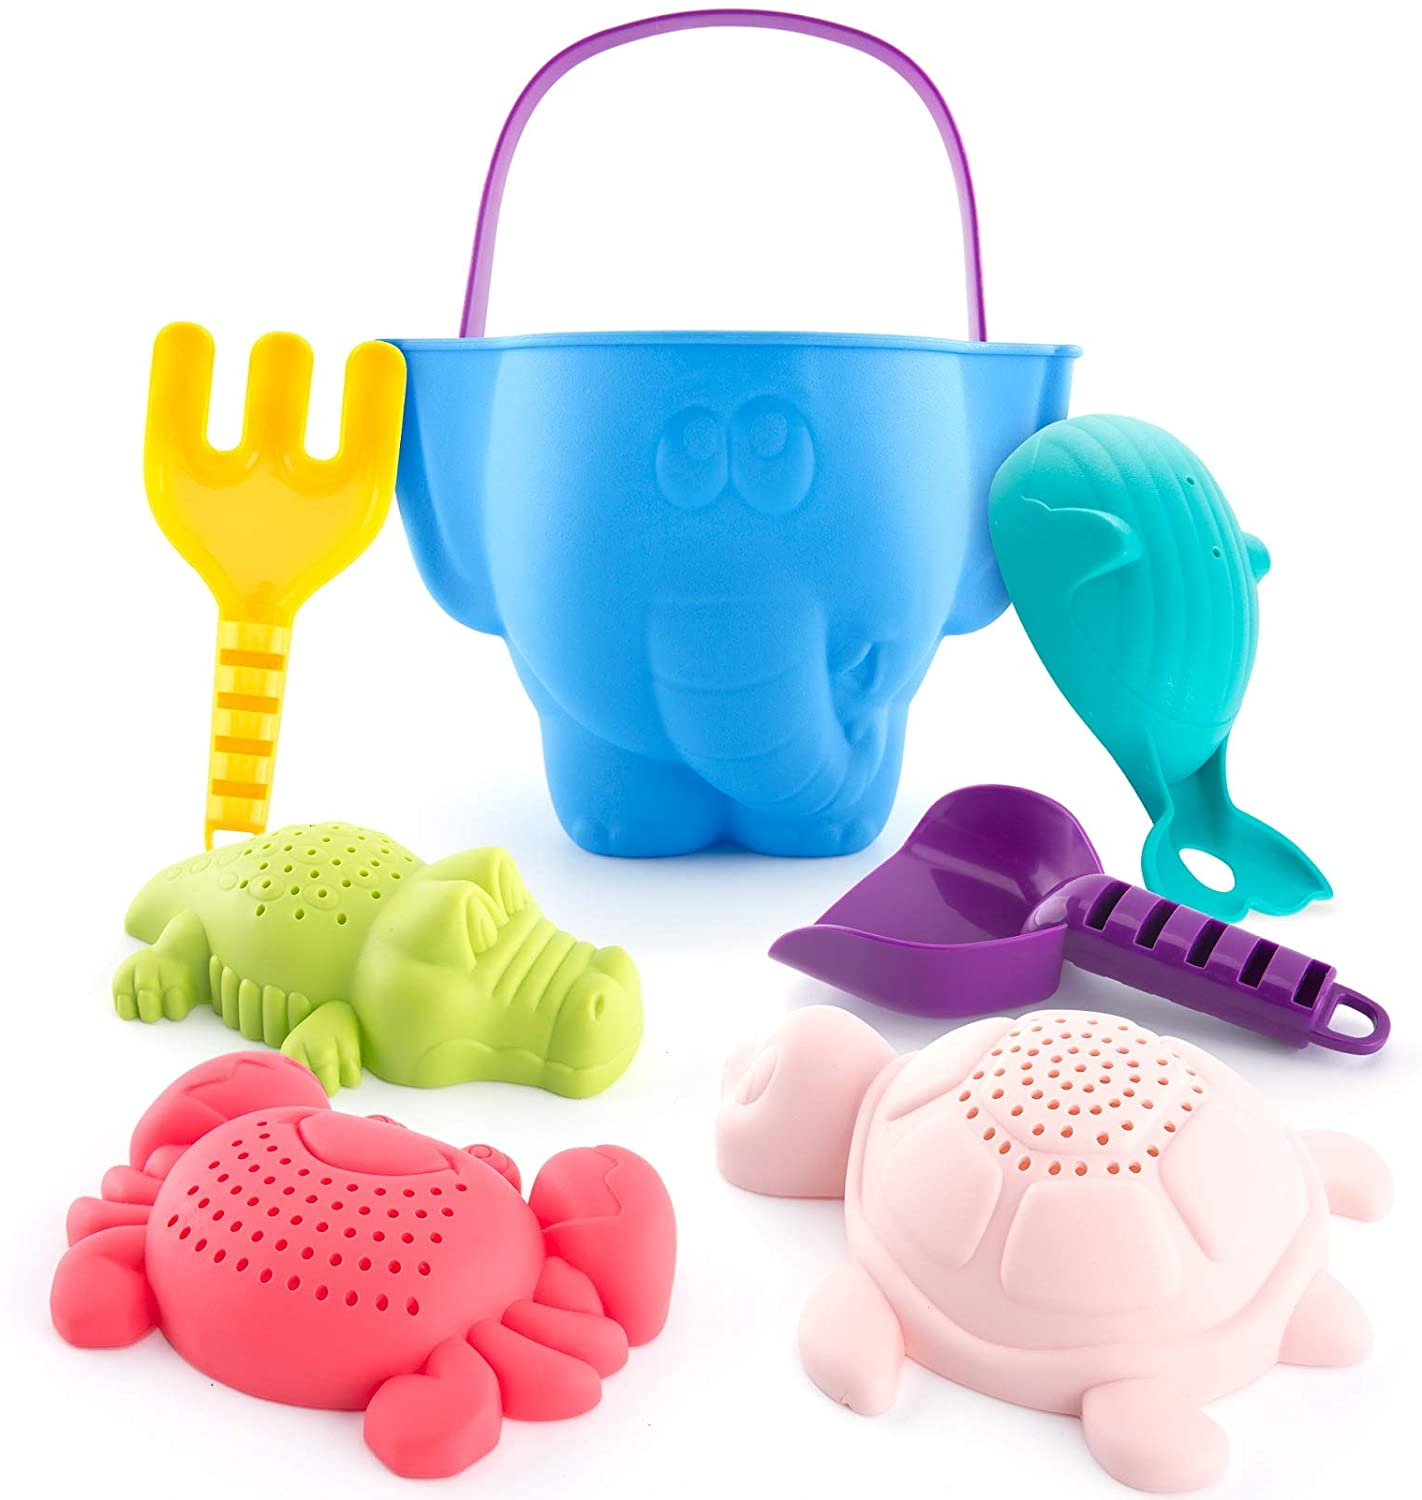 gifts-for-1-year-old-beach-set